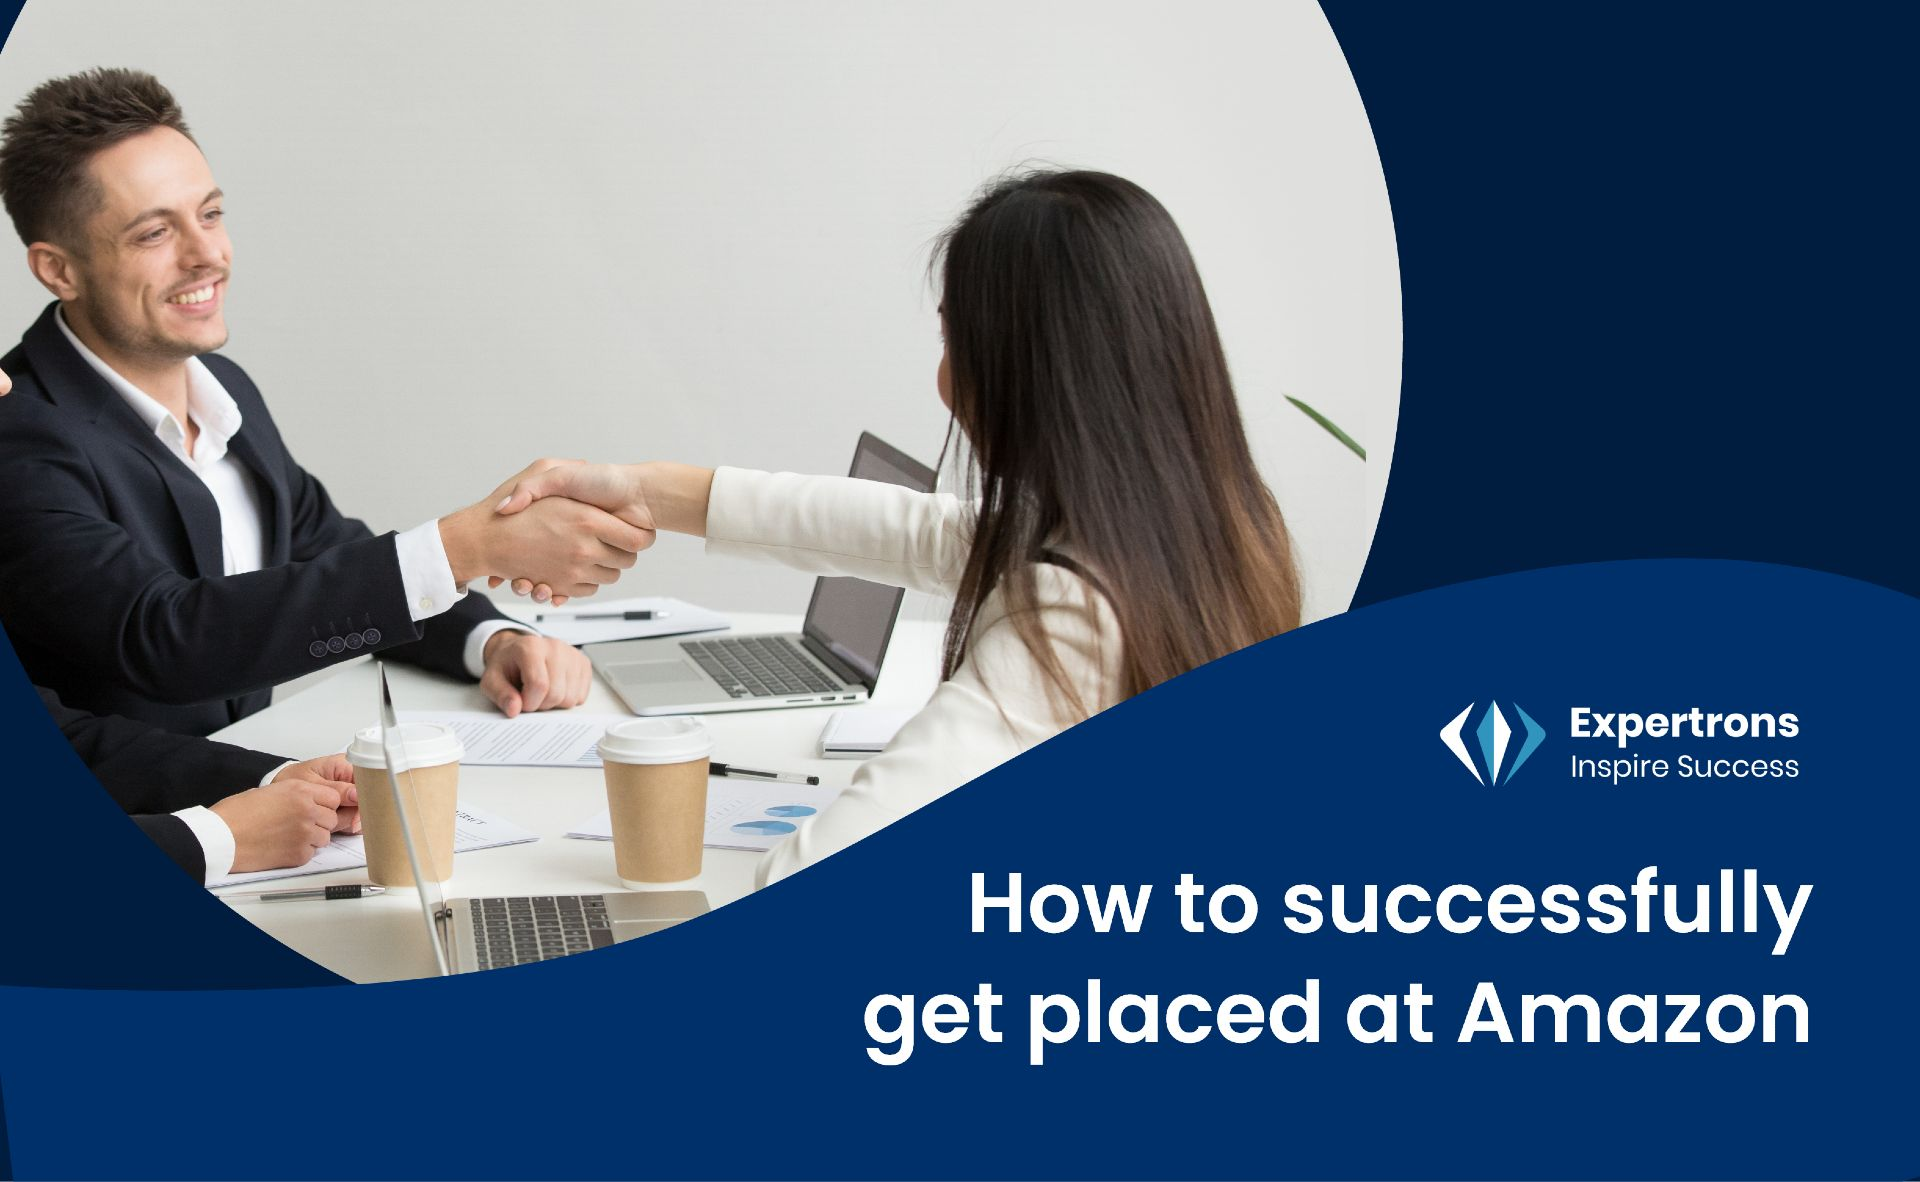 Get placd at amazon and amazon selection process